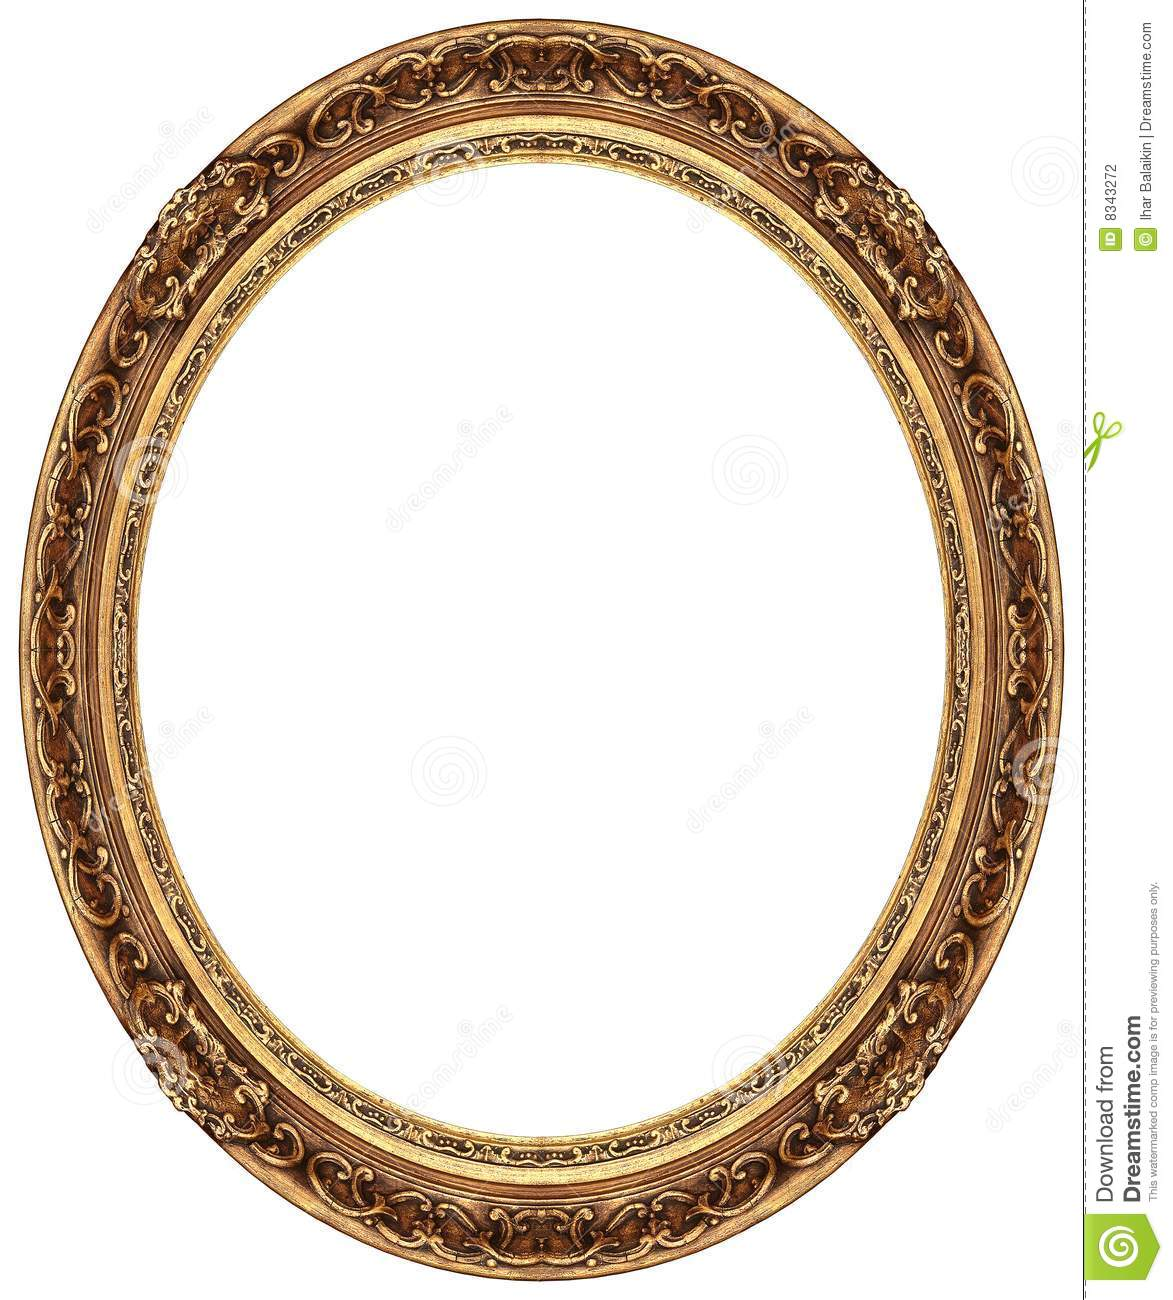 Oval Gold Picture Frame Stock Photography - Image: 8343272